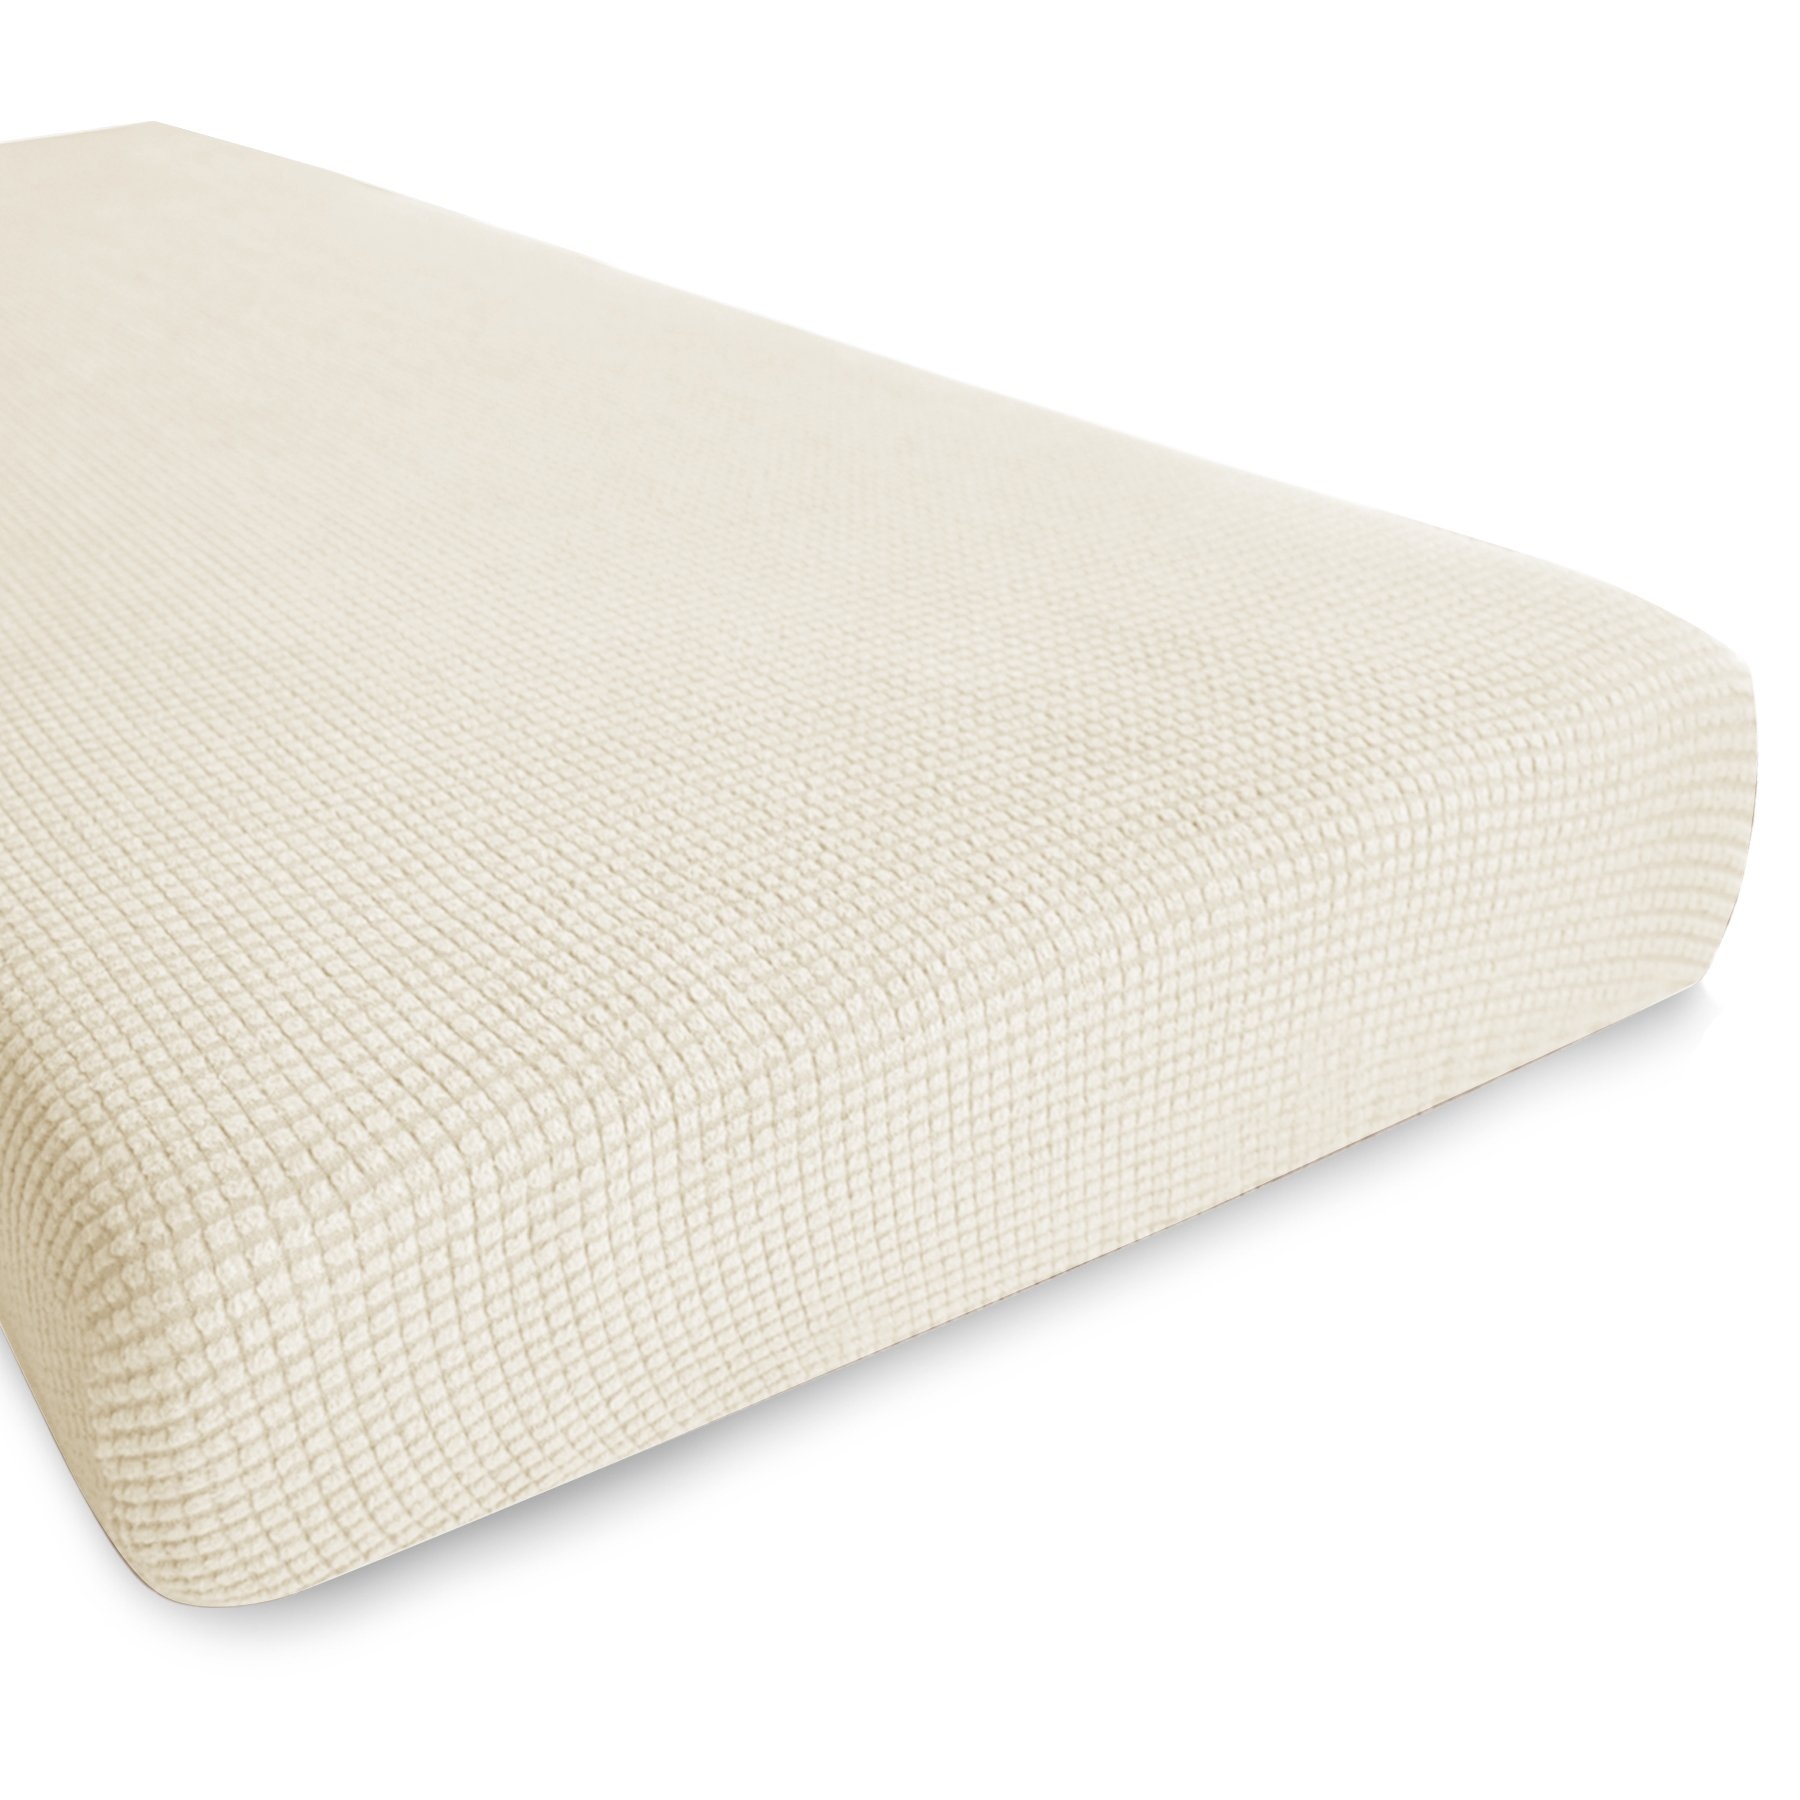 Hokway Stretch Sofa Slipcovers 3 Cushion Couch Sofa Covers Couch Cushion Protector Covers (Loveseat, (Cushion) Off-White)